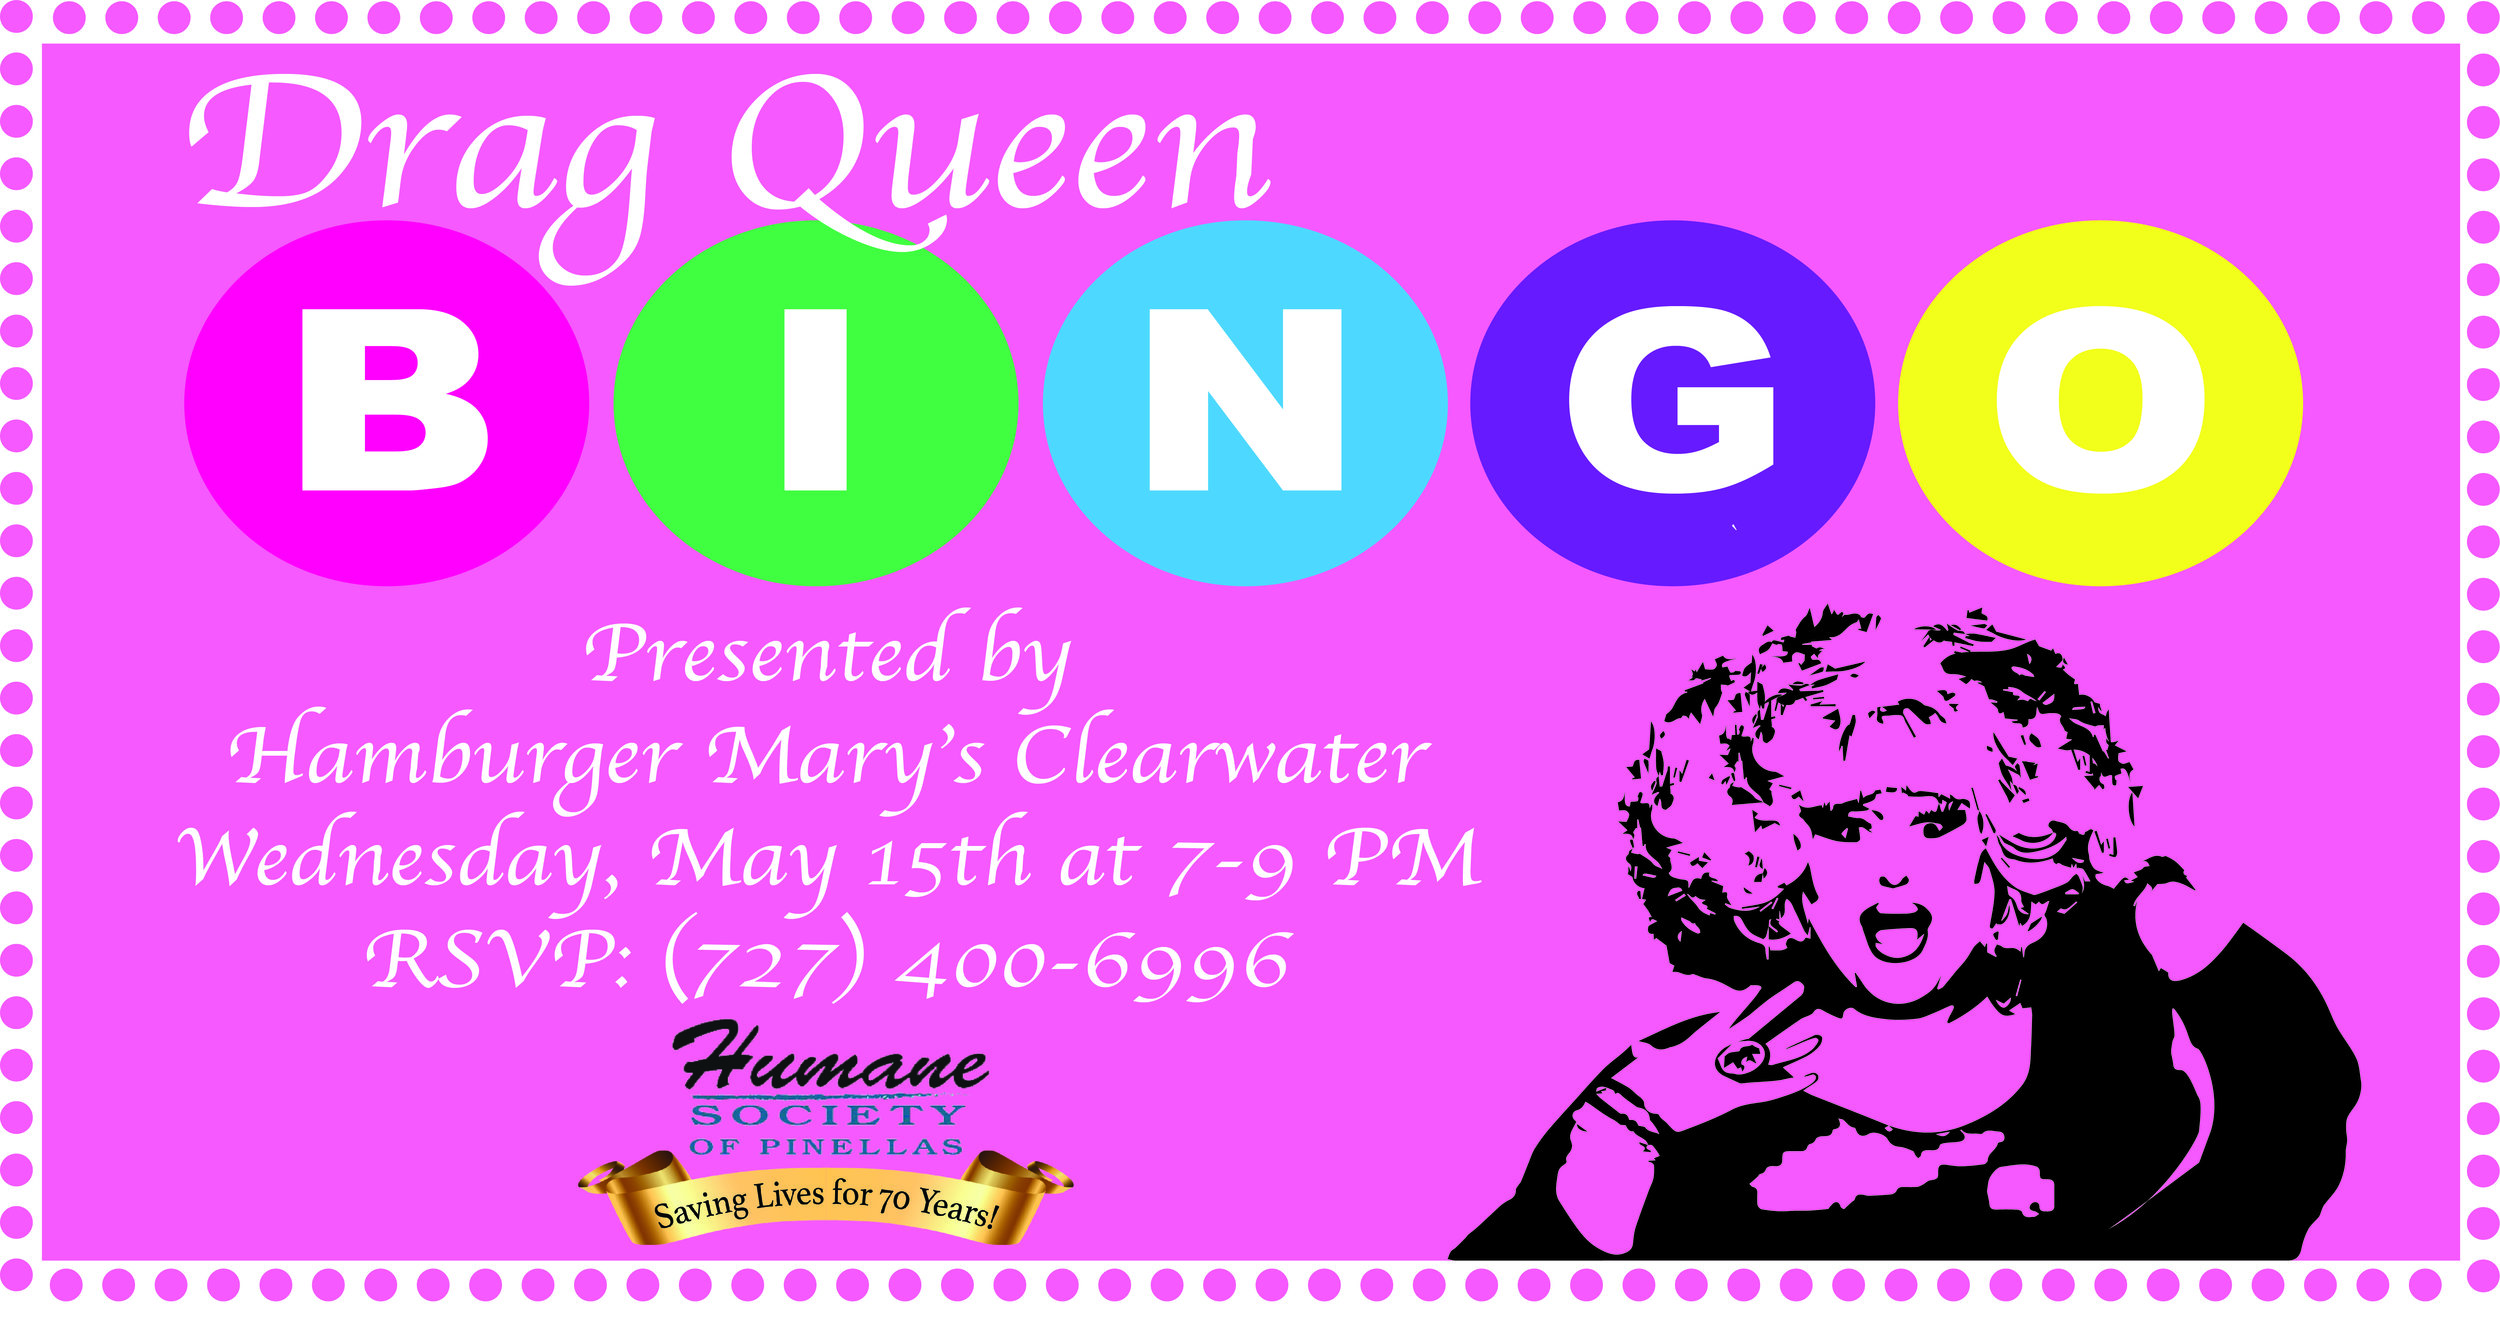 Drag Queen Bingo may 15 Cover.jpg